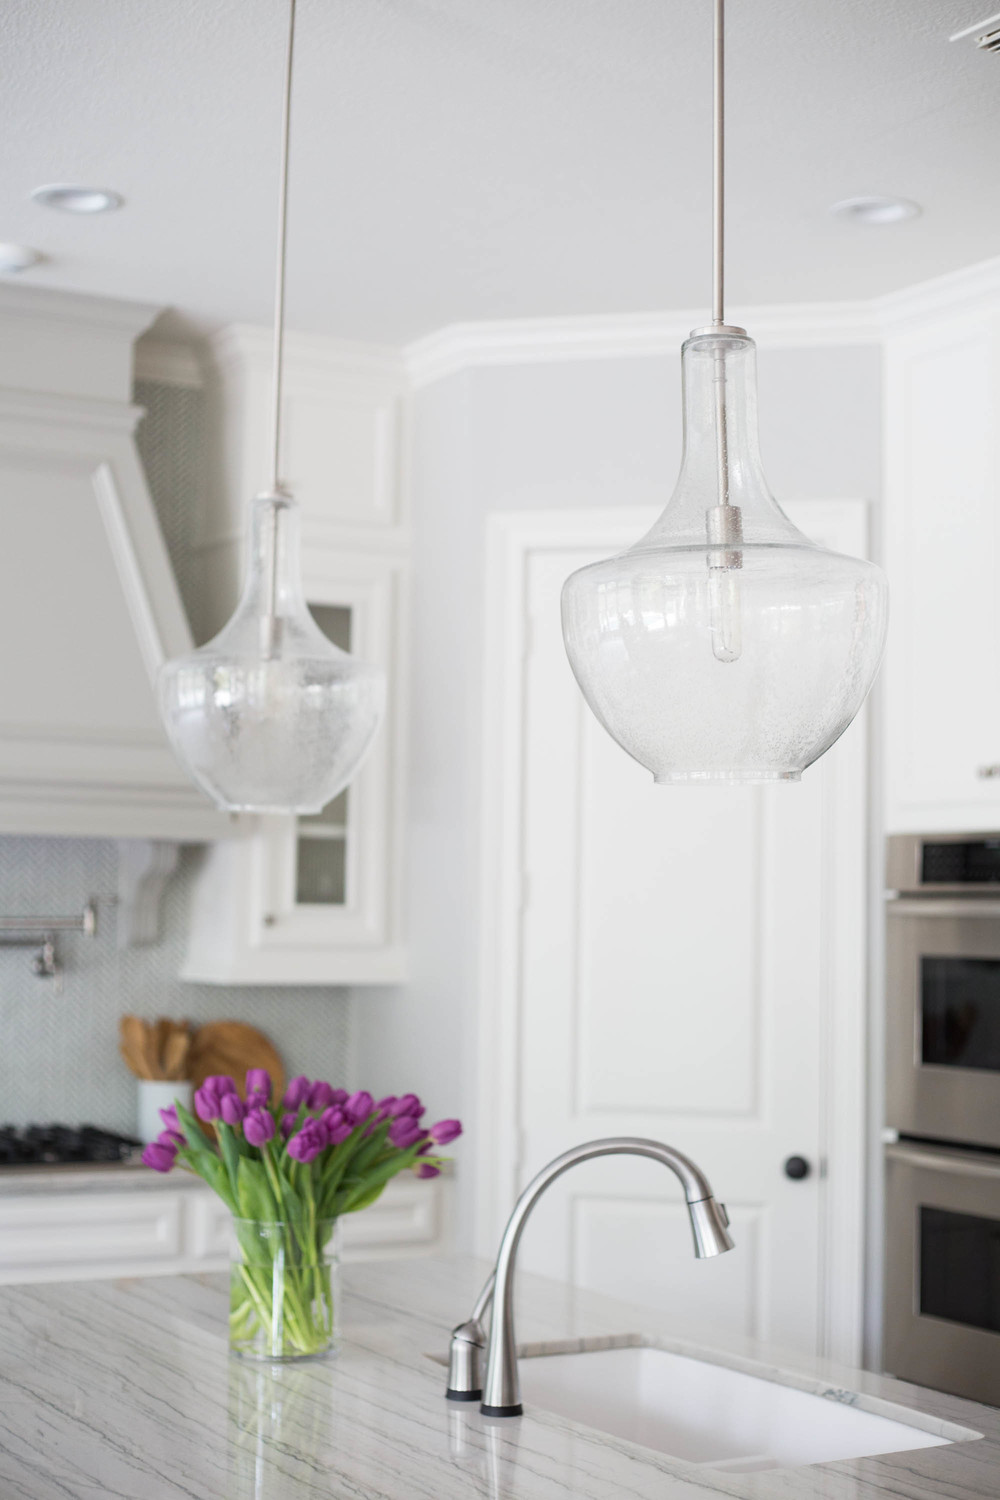 Pendant Lighting - Kitchen Remodel, Carla Aston - Designer, Tori Aston - Photographer